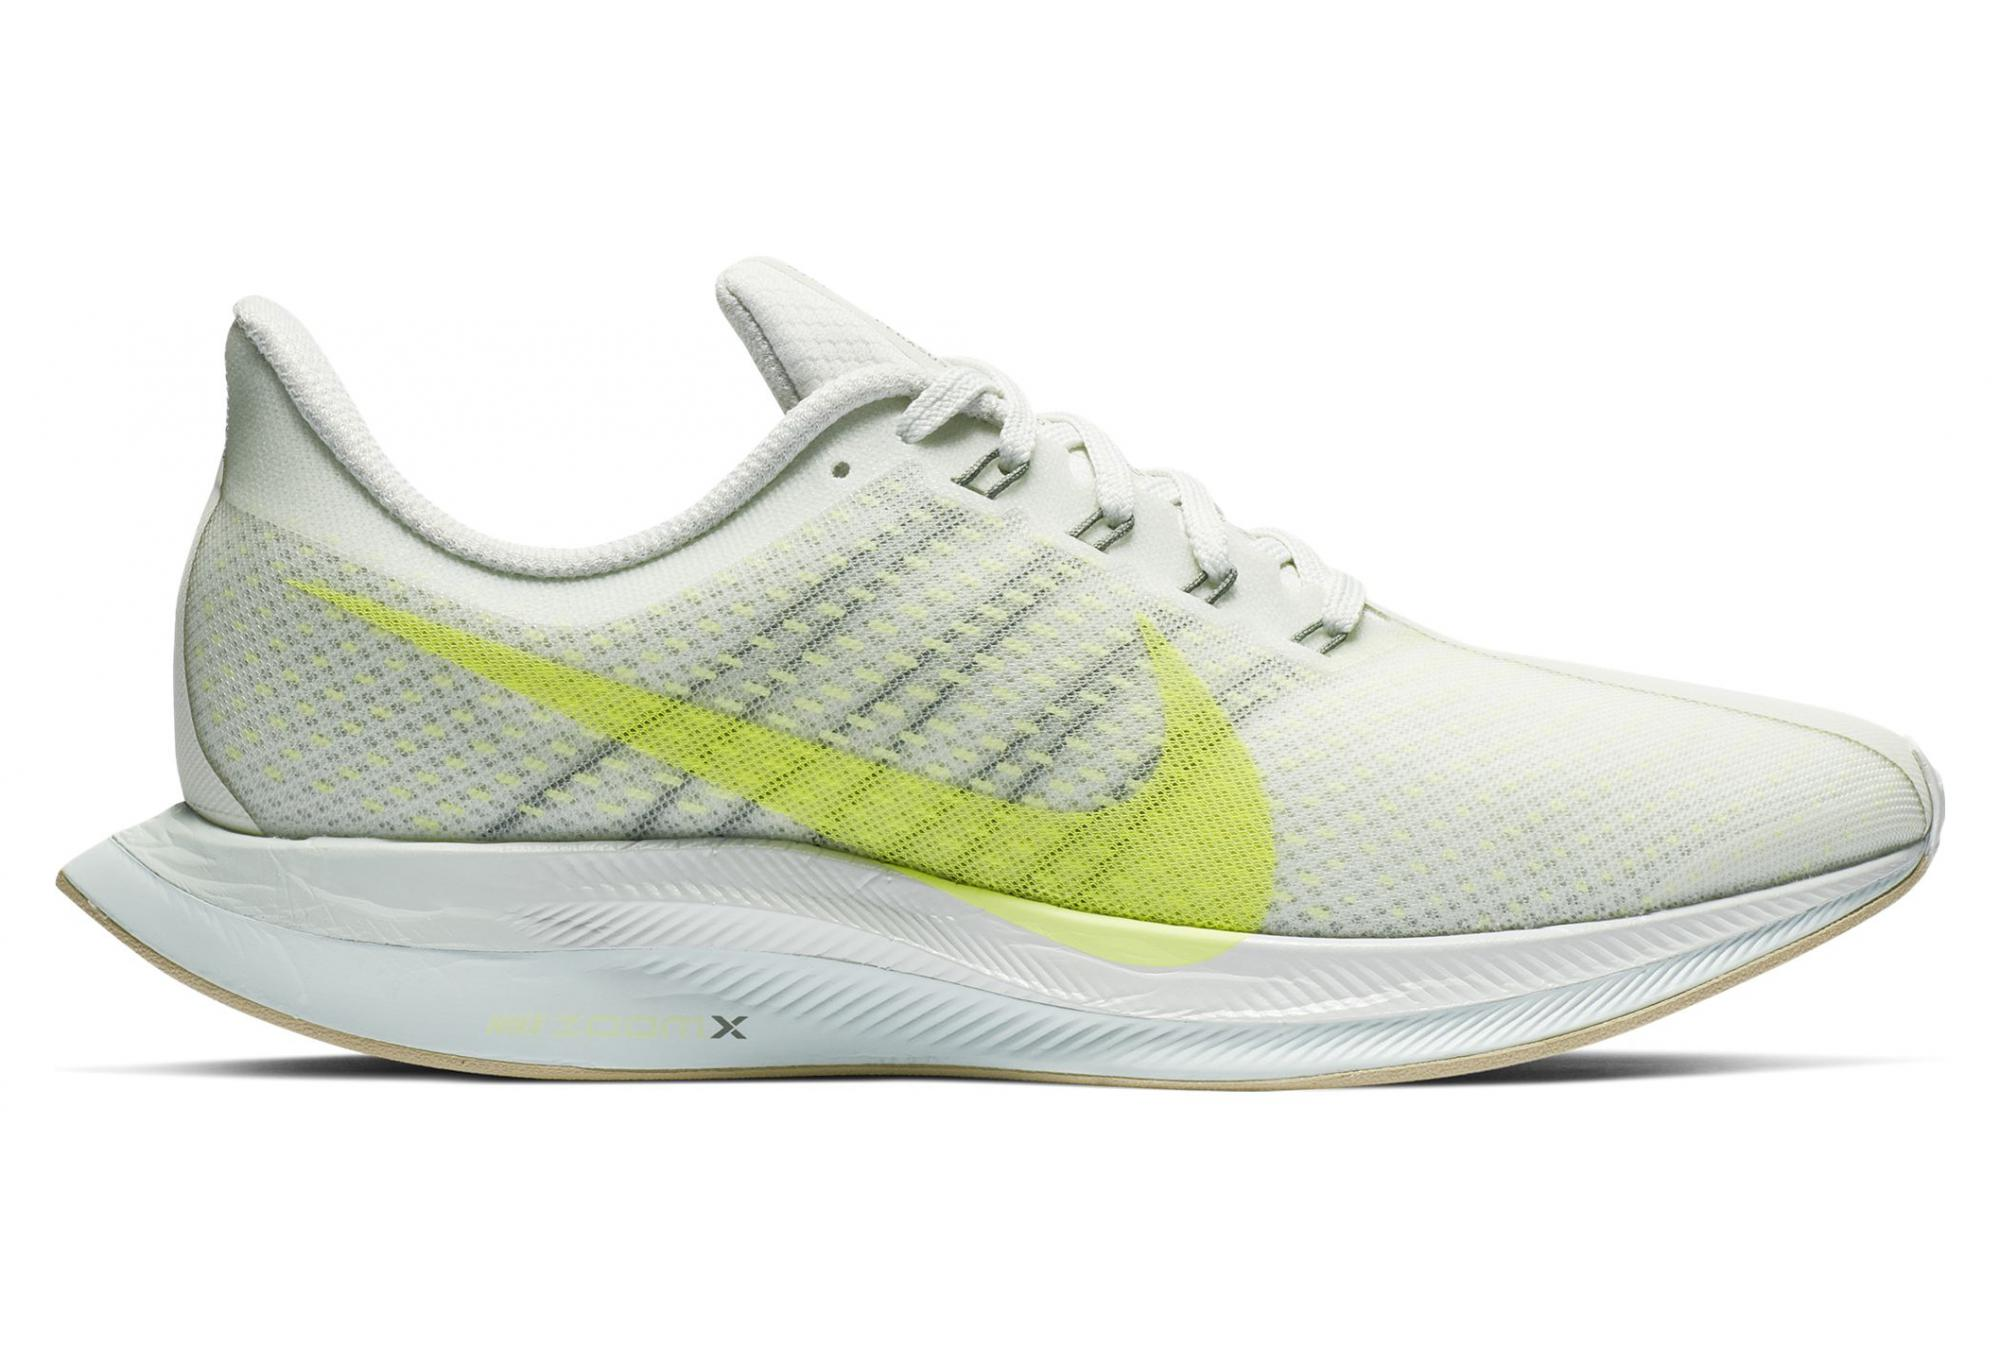 e5ebdbd9b07 Nike Zoom Pegasus Turbo Beige Yellow Women